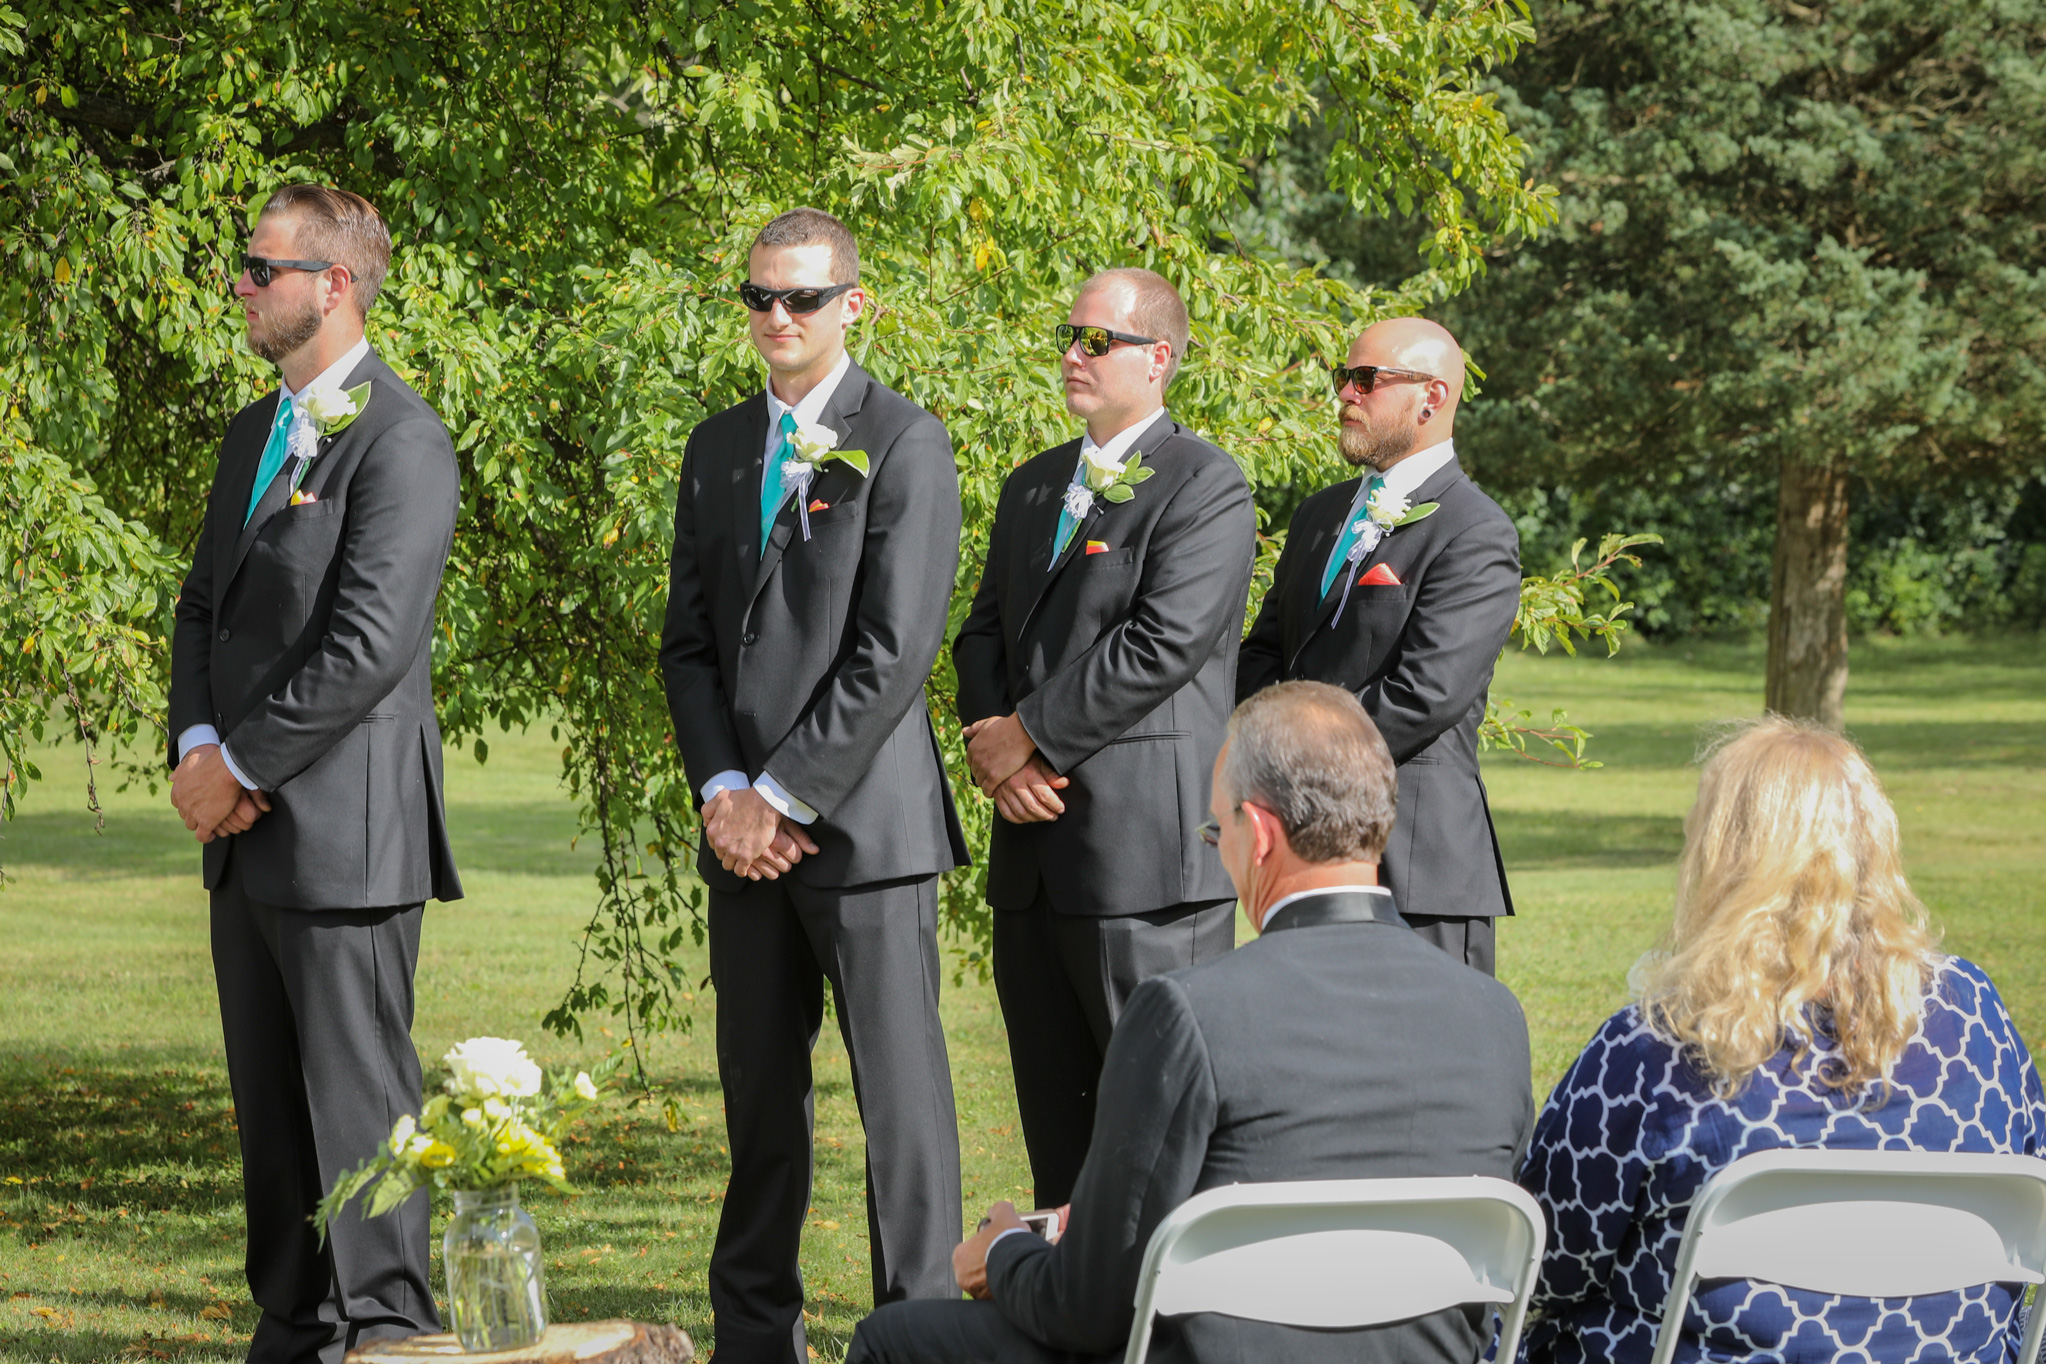 wedding_bridal_groomsmen_bridesmaids_3.jpg